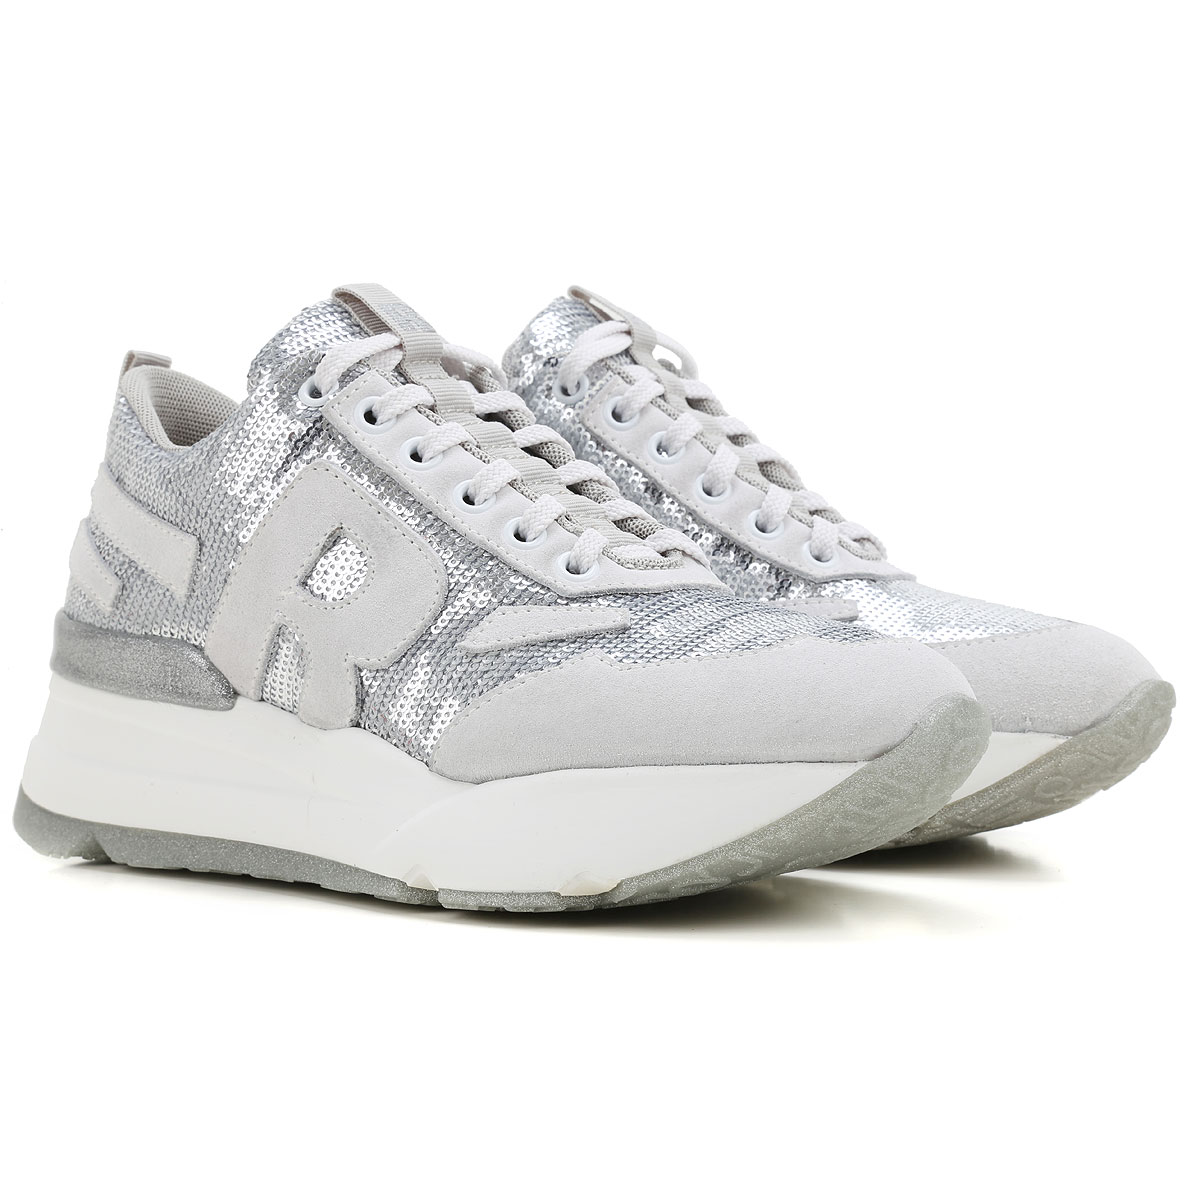 Ruco Line Low top sneakers 3DSPZT